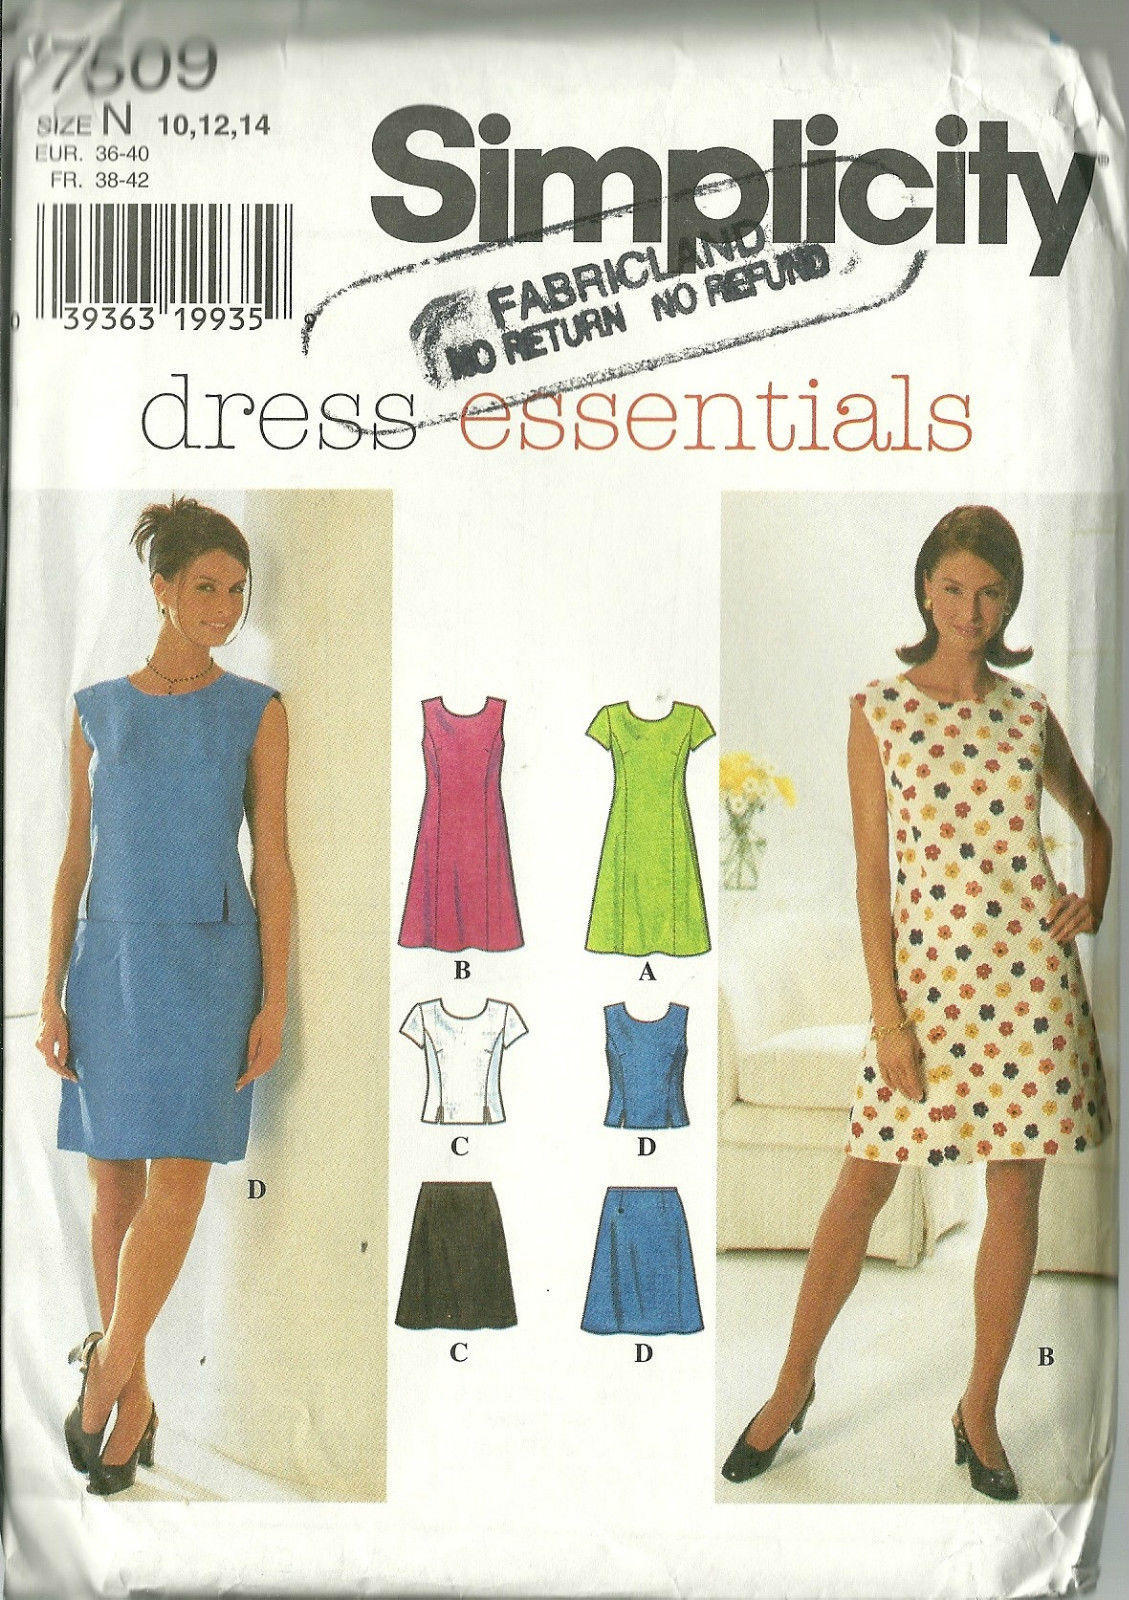 Simplicity Sewing Pattern 7509 Misses Womens Dress Skirt Top Size 10 12 14 New